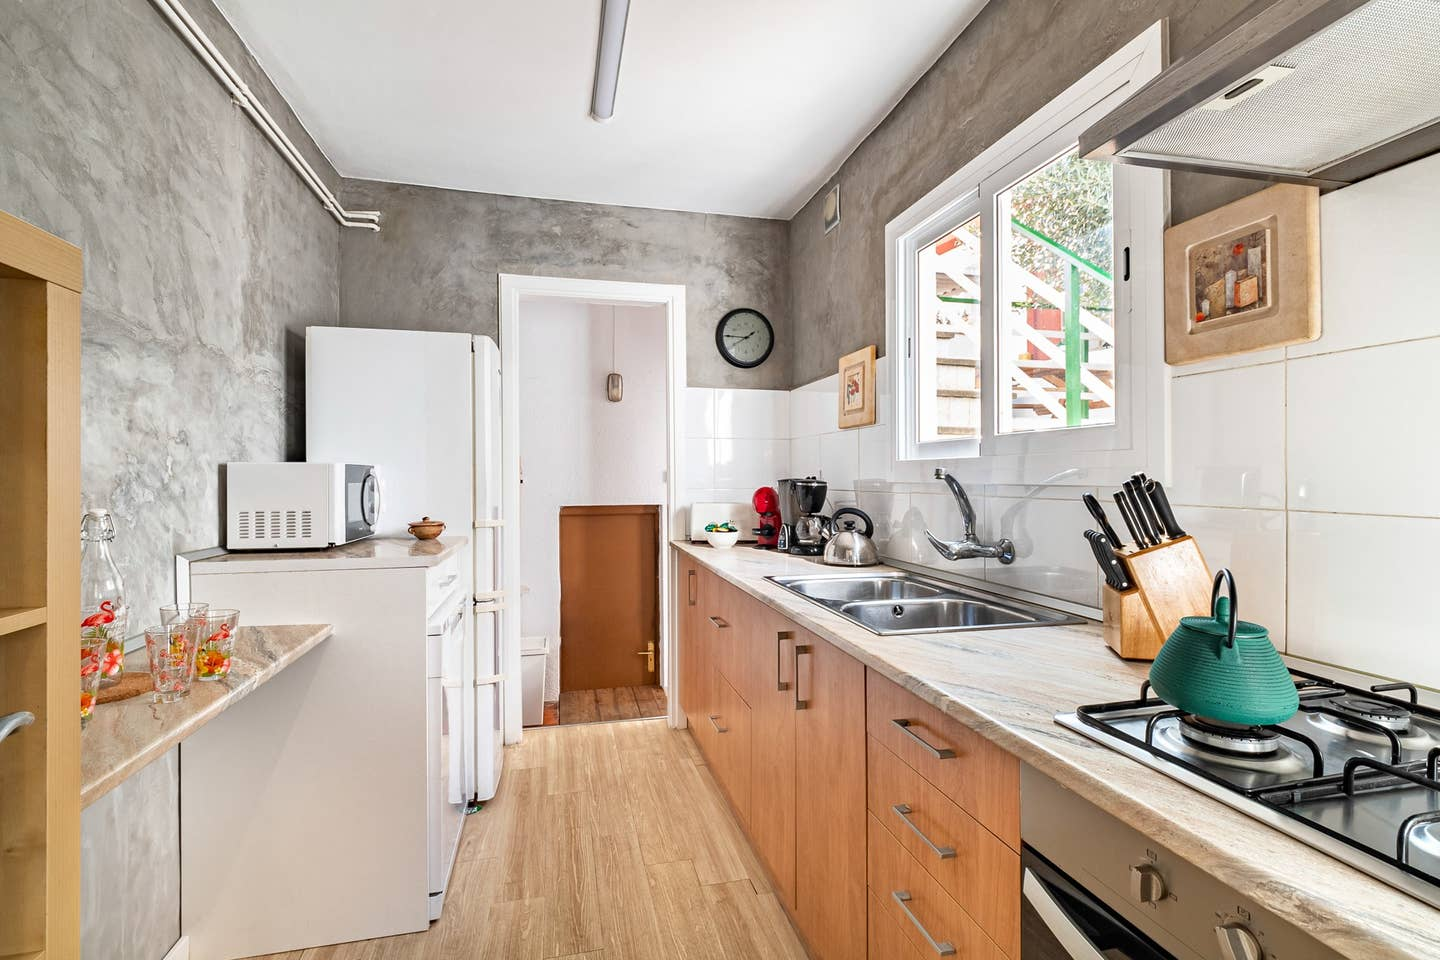 kitchen fully equipped: dish washer,